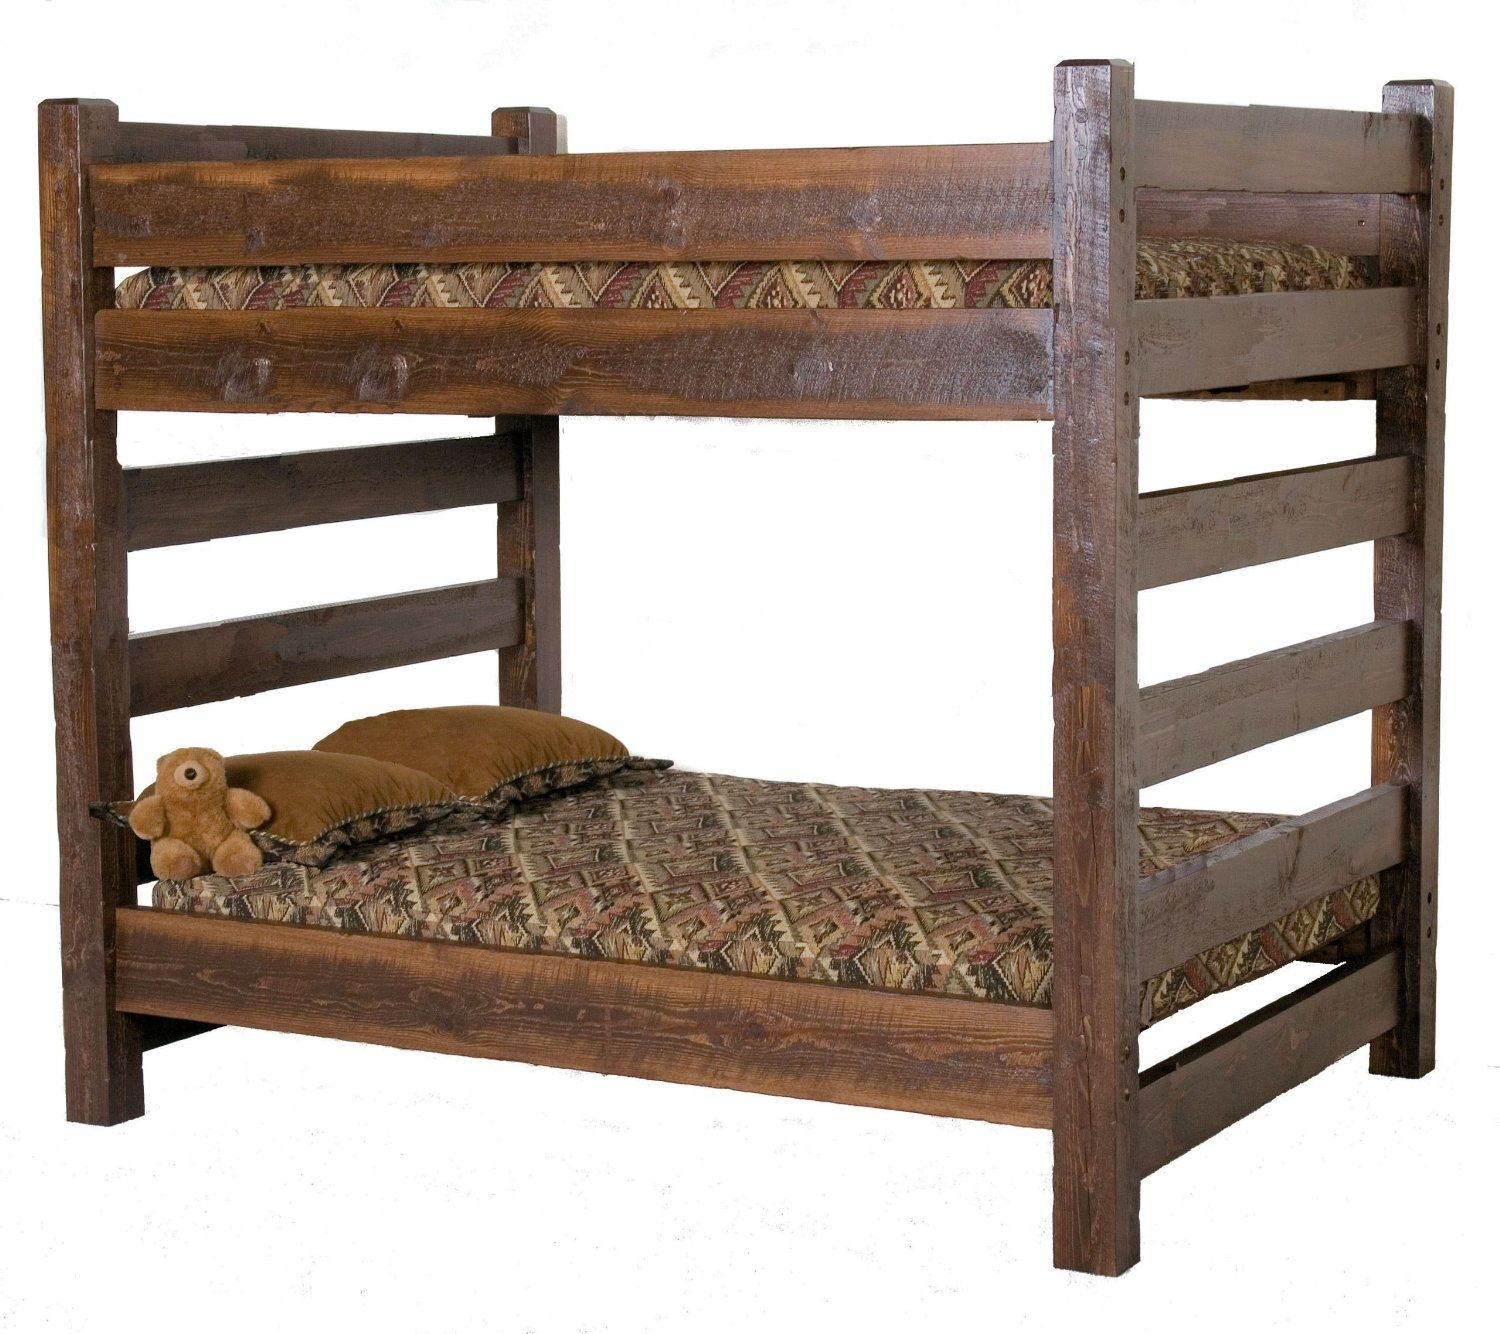 Adorable queen size bunk beds design ideas bunkbeds for Bunk bed design ideas